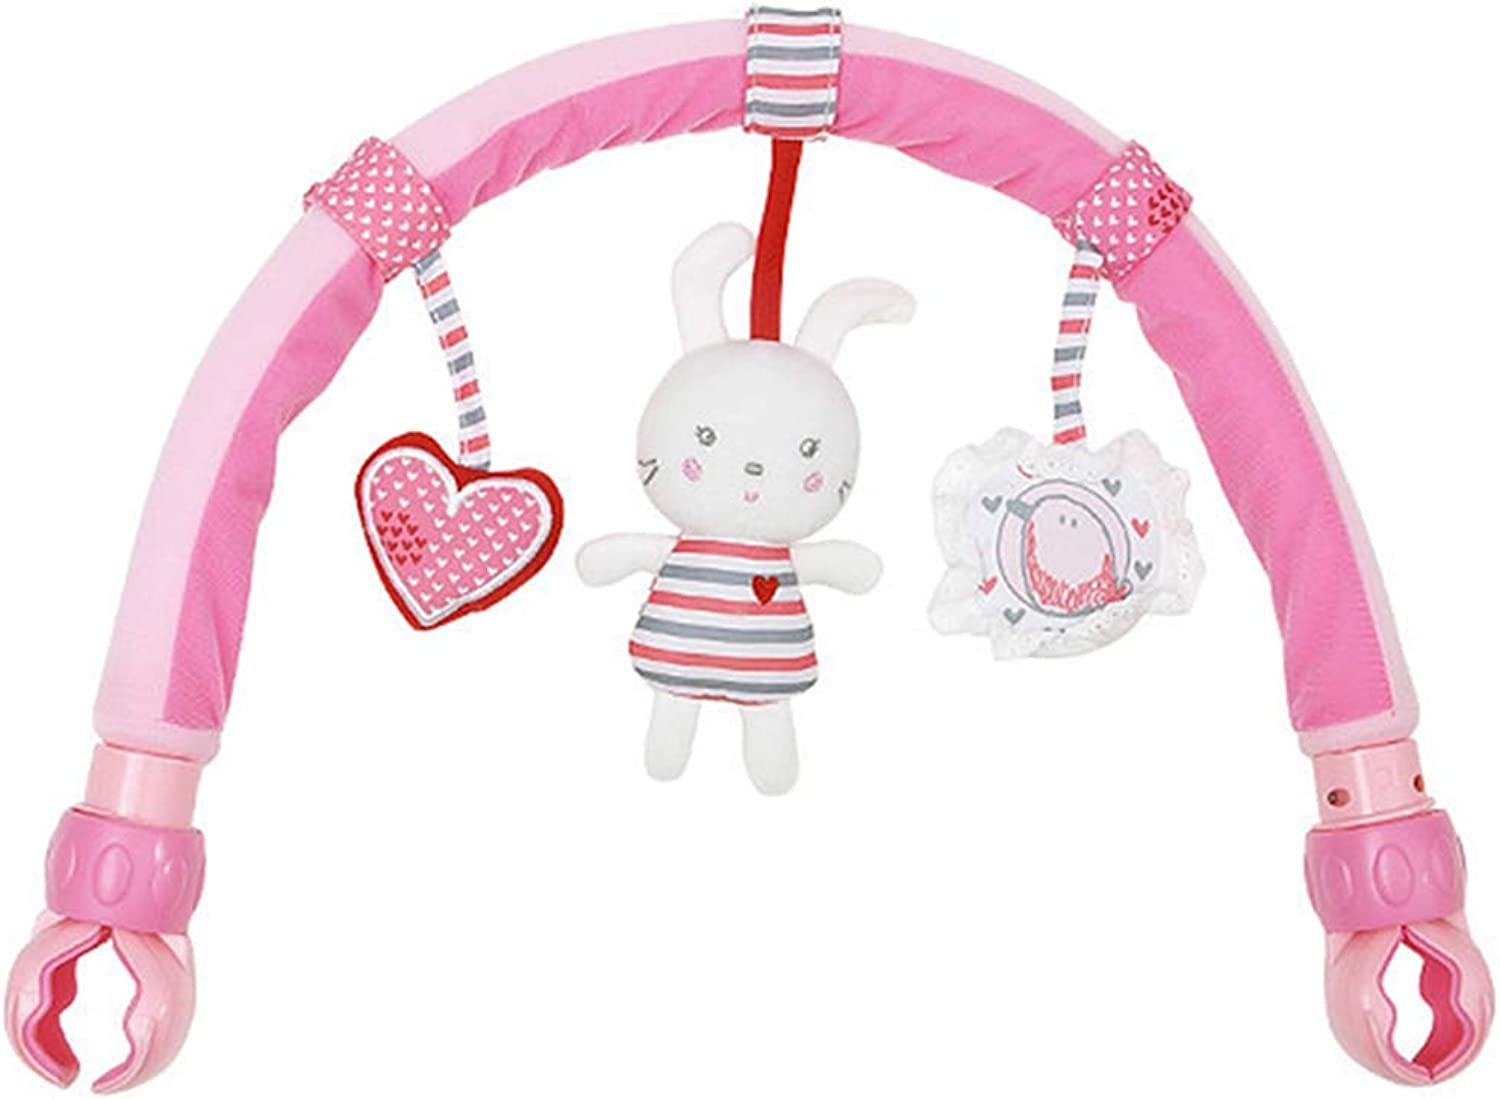 Singring Baby Pram Crib Activity Arch Plush Sunny Toy Stroller and Travel Activity Bar with Rattle and Exercise Baby Hands-On Ability